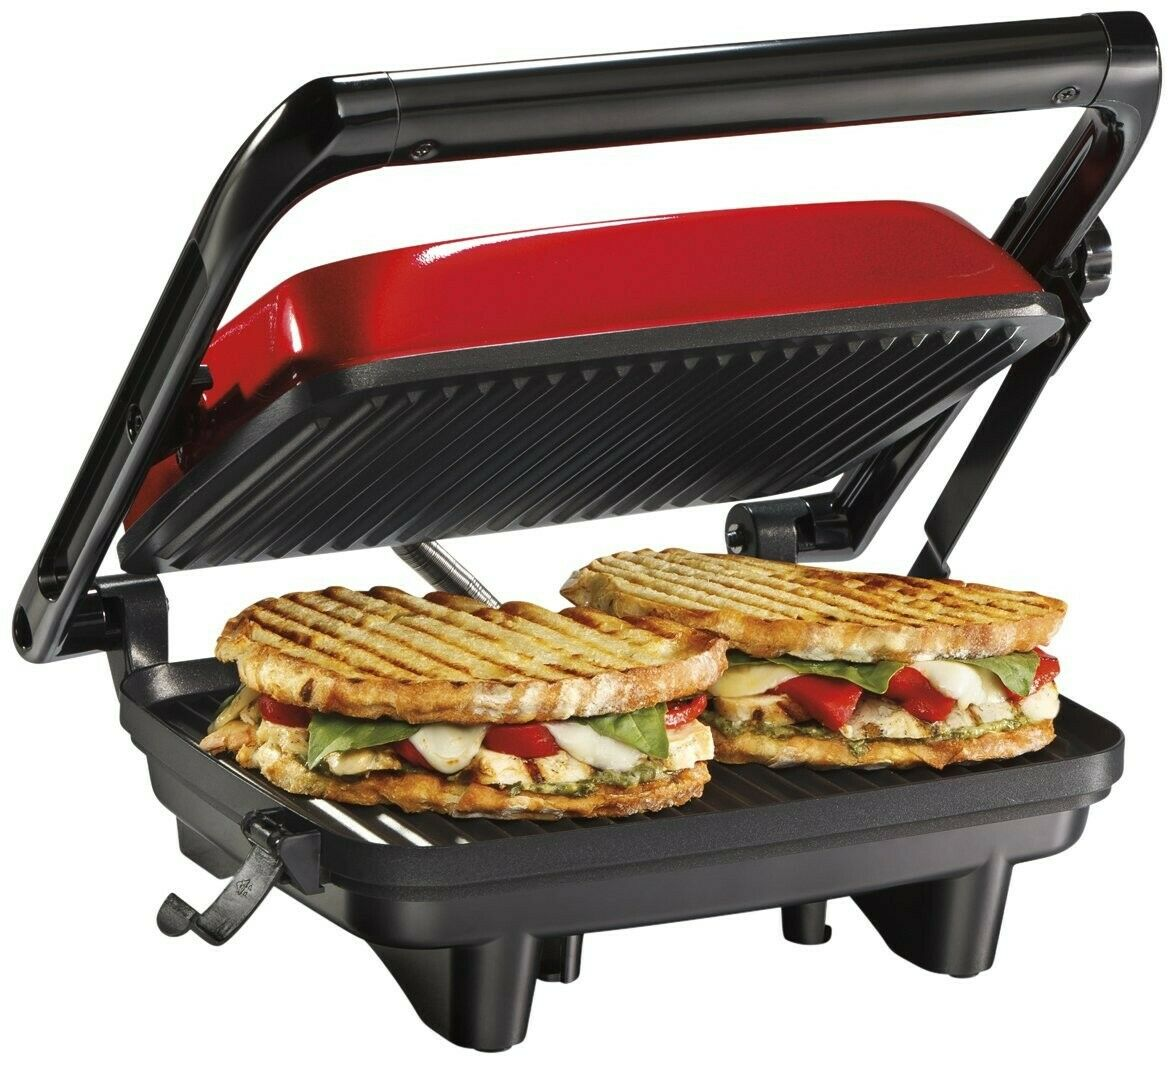 Hamilton Beach Electric Panini Press Grill With Locking Lid,